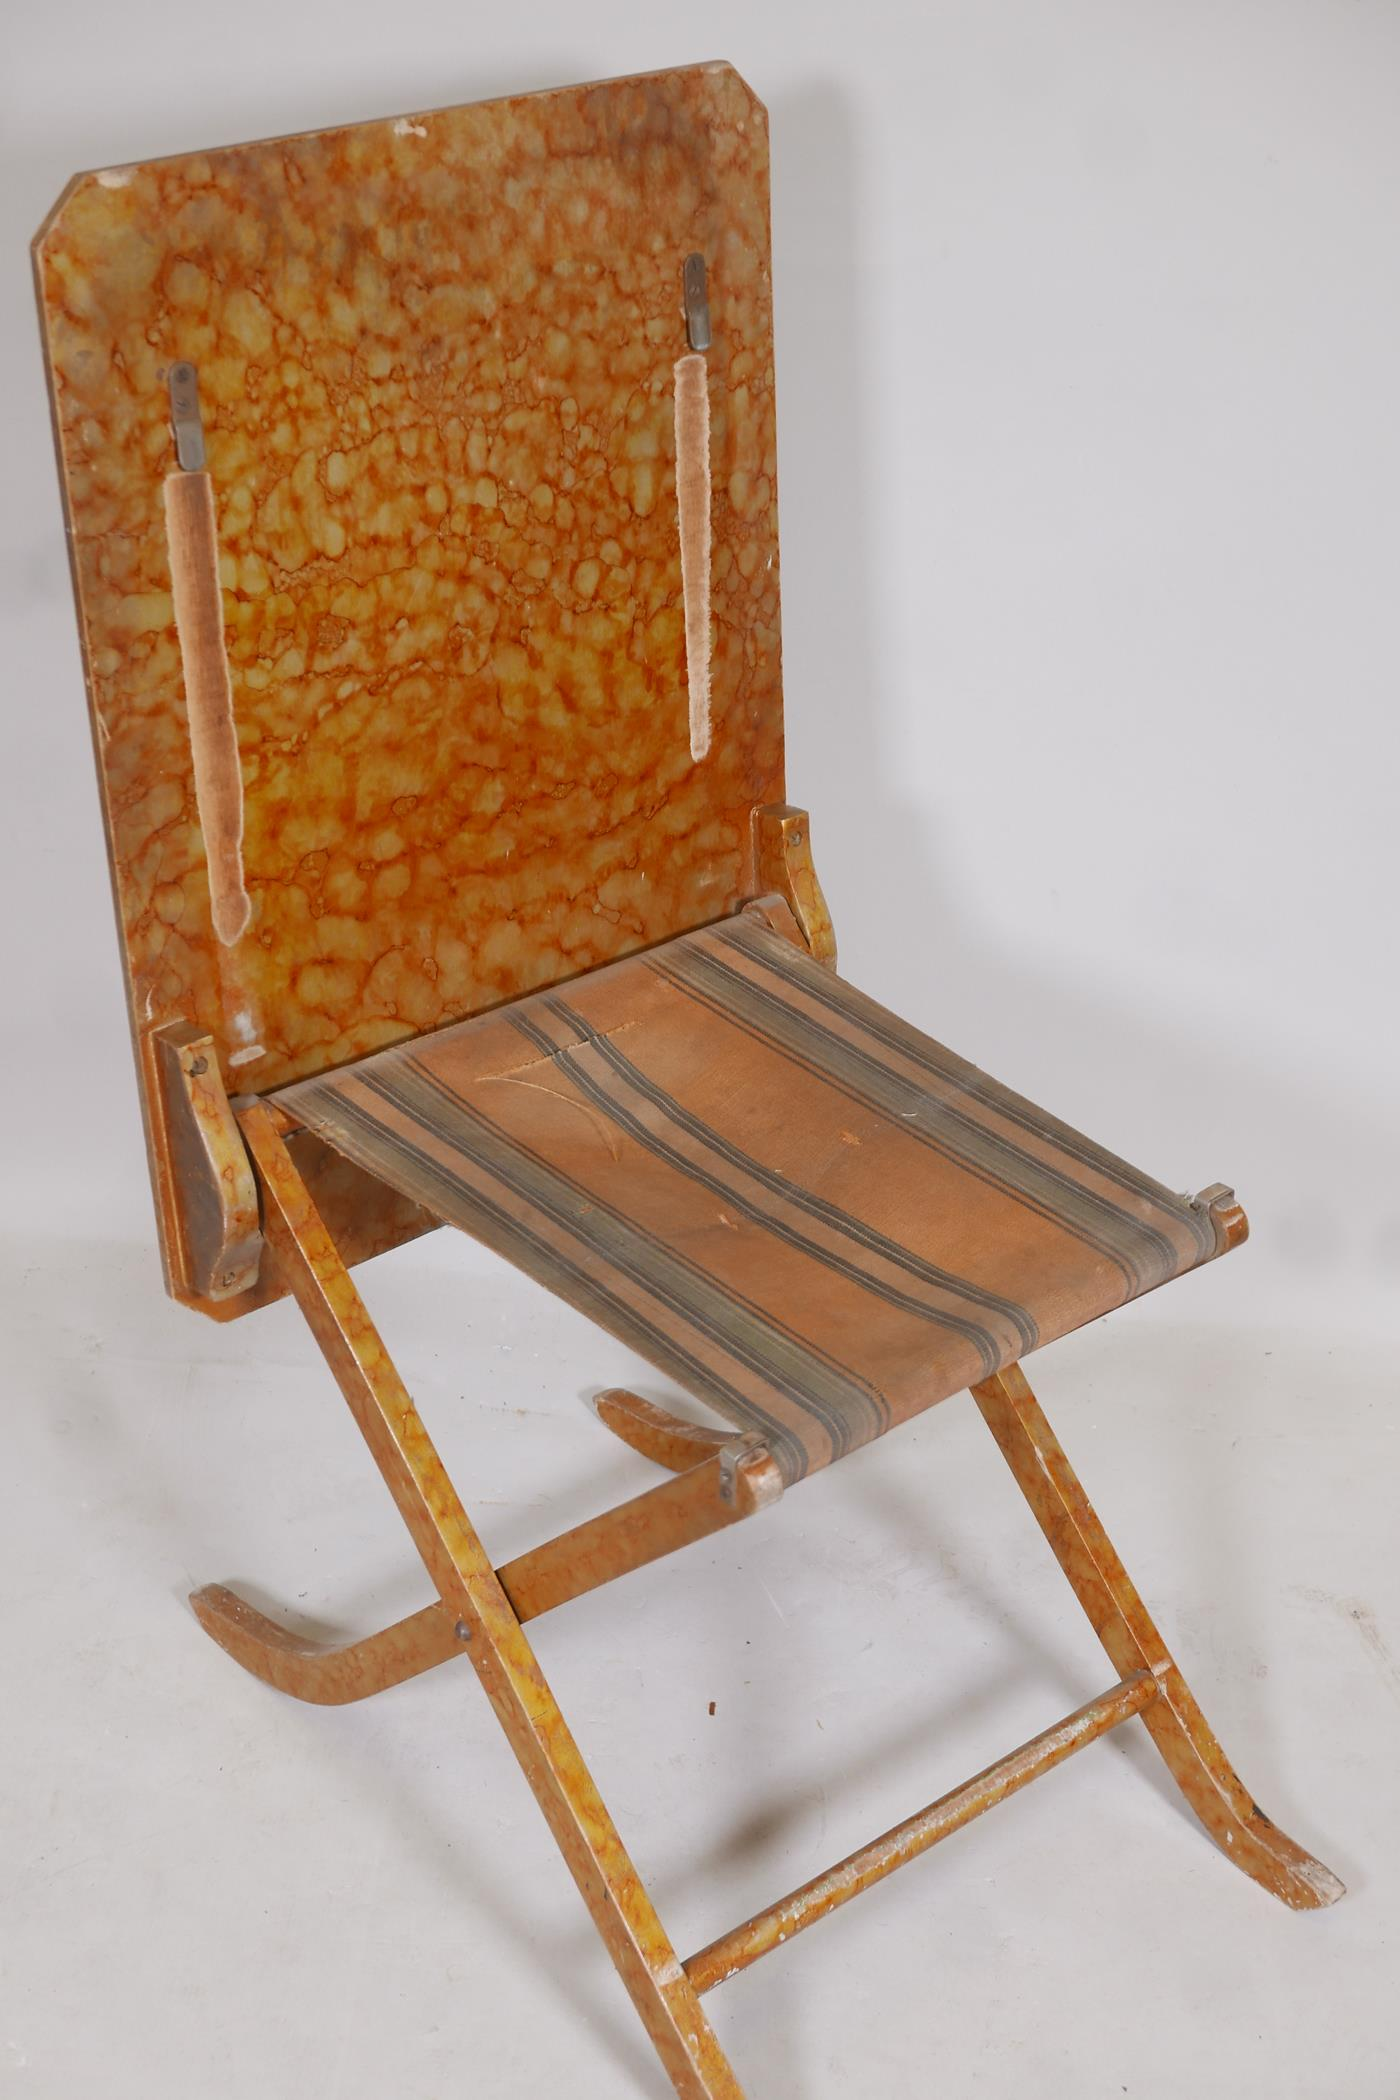 A metamorphic table/chair, early C20th, in original painted finish - Image 3 of 4